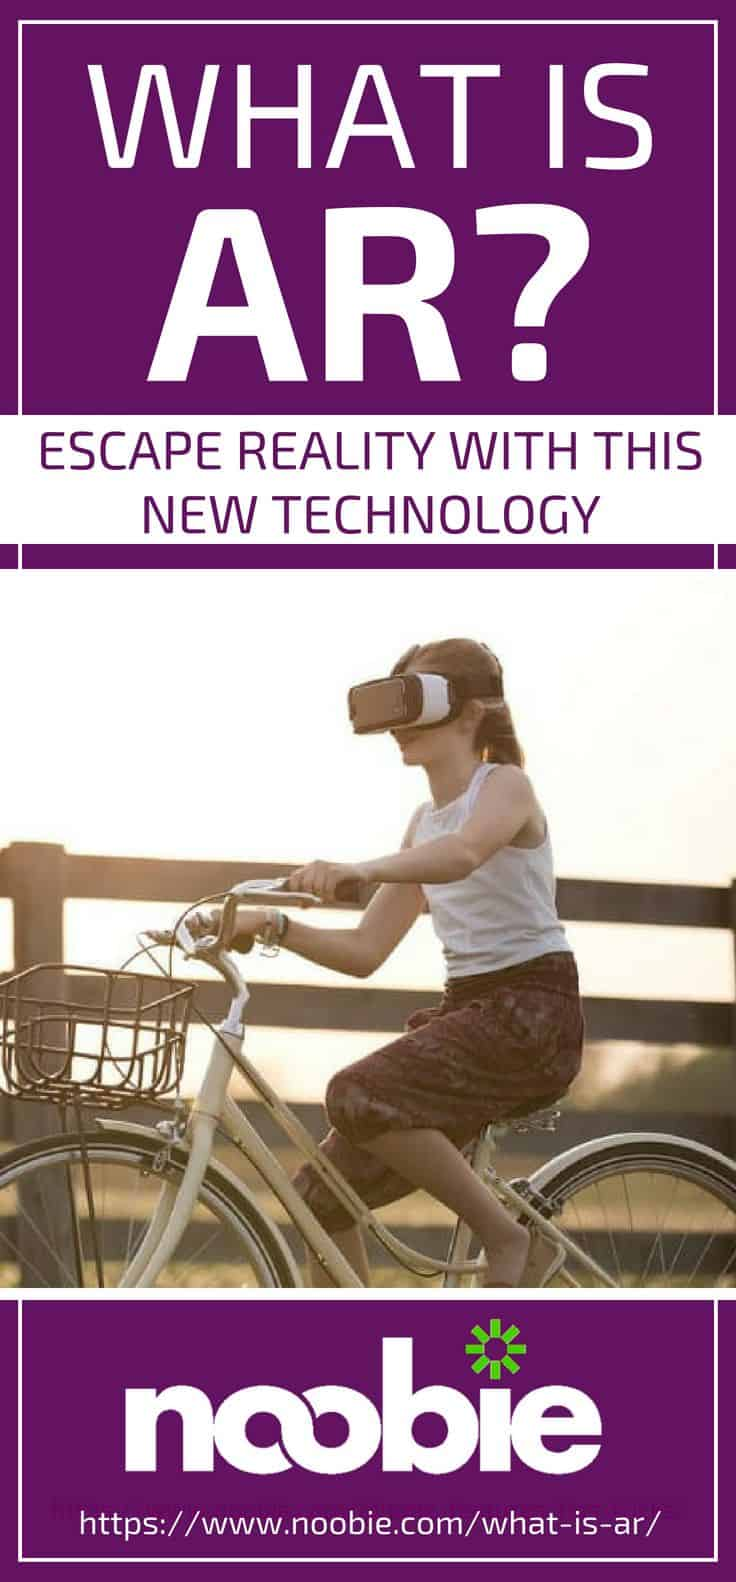 Pinterest Placard | What Is AR? Escape Reality With This New Technology